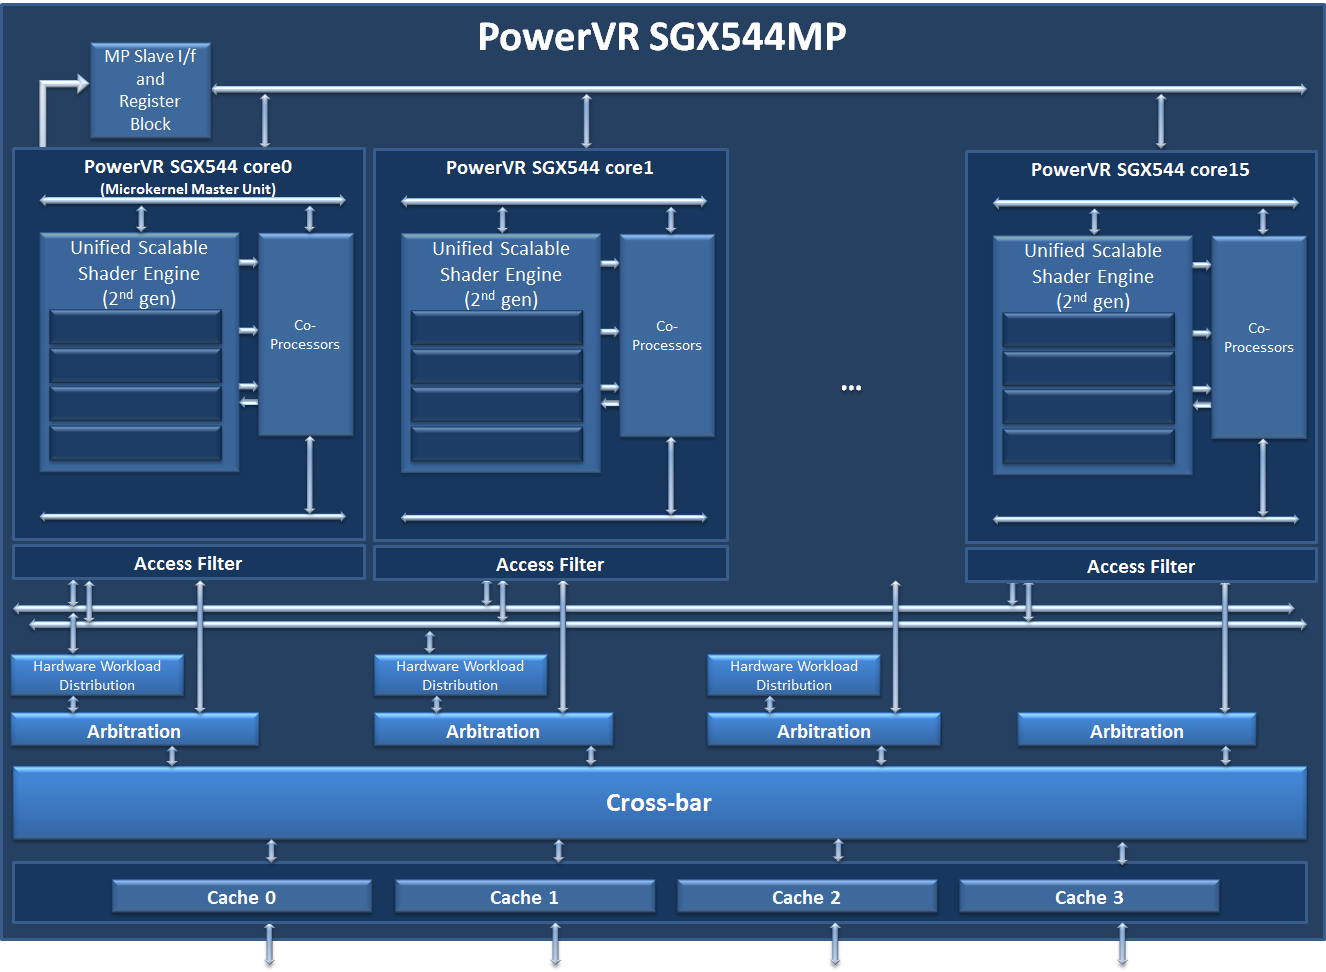 Licensing hpc state tx us datamart mainmenu - The Powervr Sgx544 Block Diagram Showing Its Advanced Architecture And High Performance Capabilities